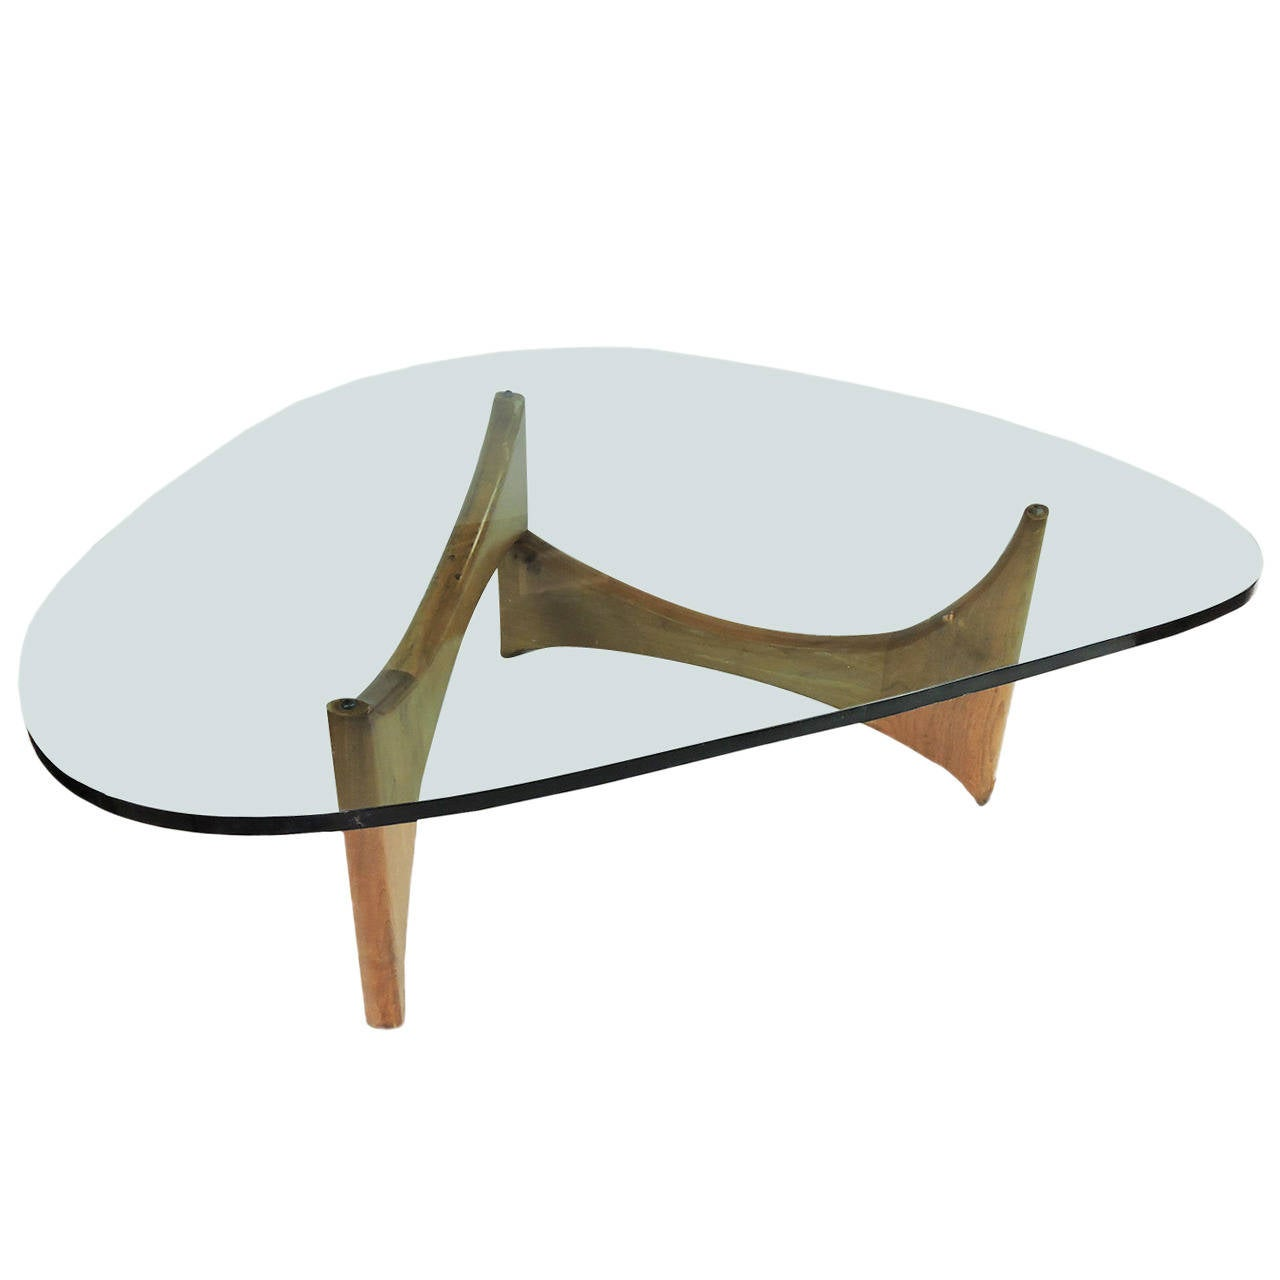 Mid Century Modern Glass and Wood Coffee Table For Sale at 1stdibs